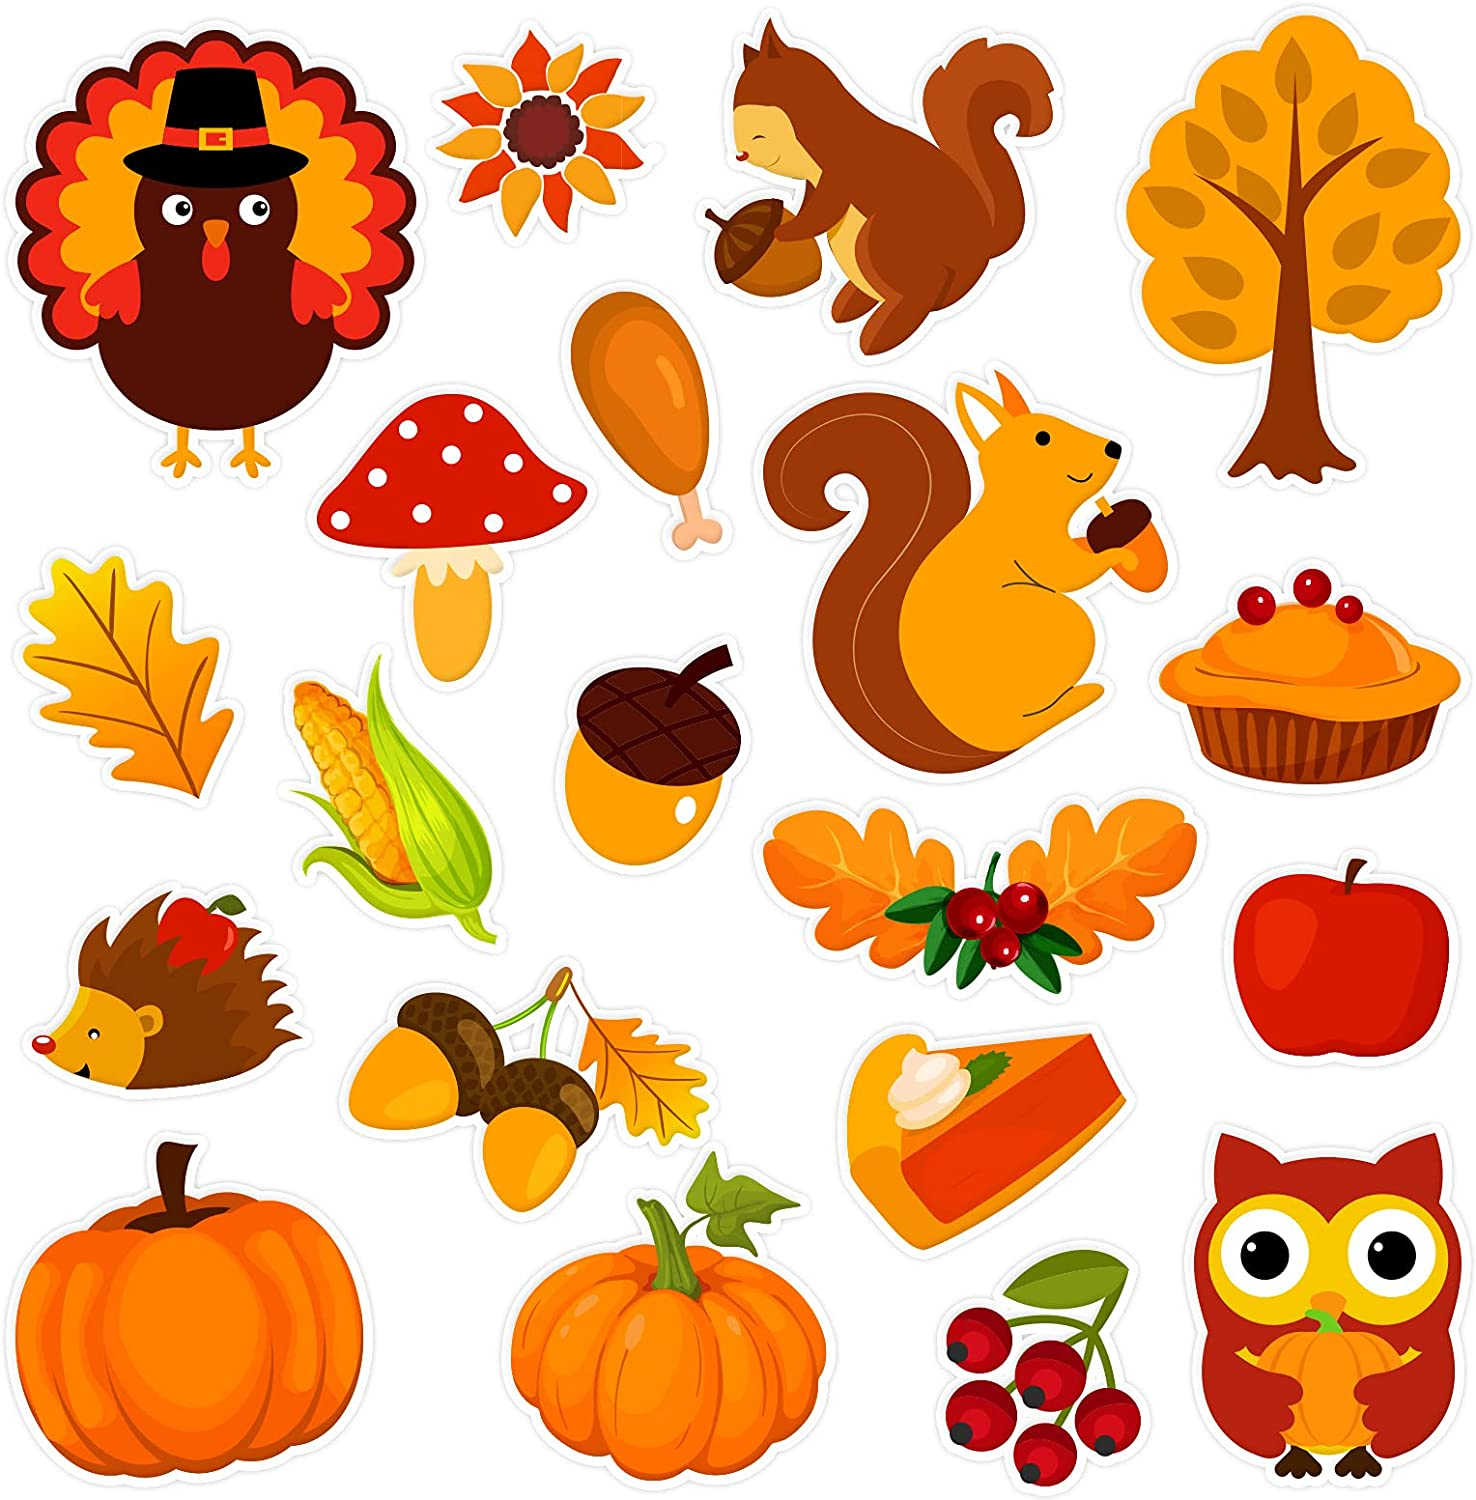 20 PCS Thanksgiving Thick Gel Cling Autumn Window Gel Clings Decals Stickers for Kids, Toddlers and Adults Home Airplane Classroom Nursery Fall Party Supplies Decorations (Thanksgiving)